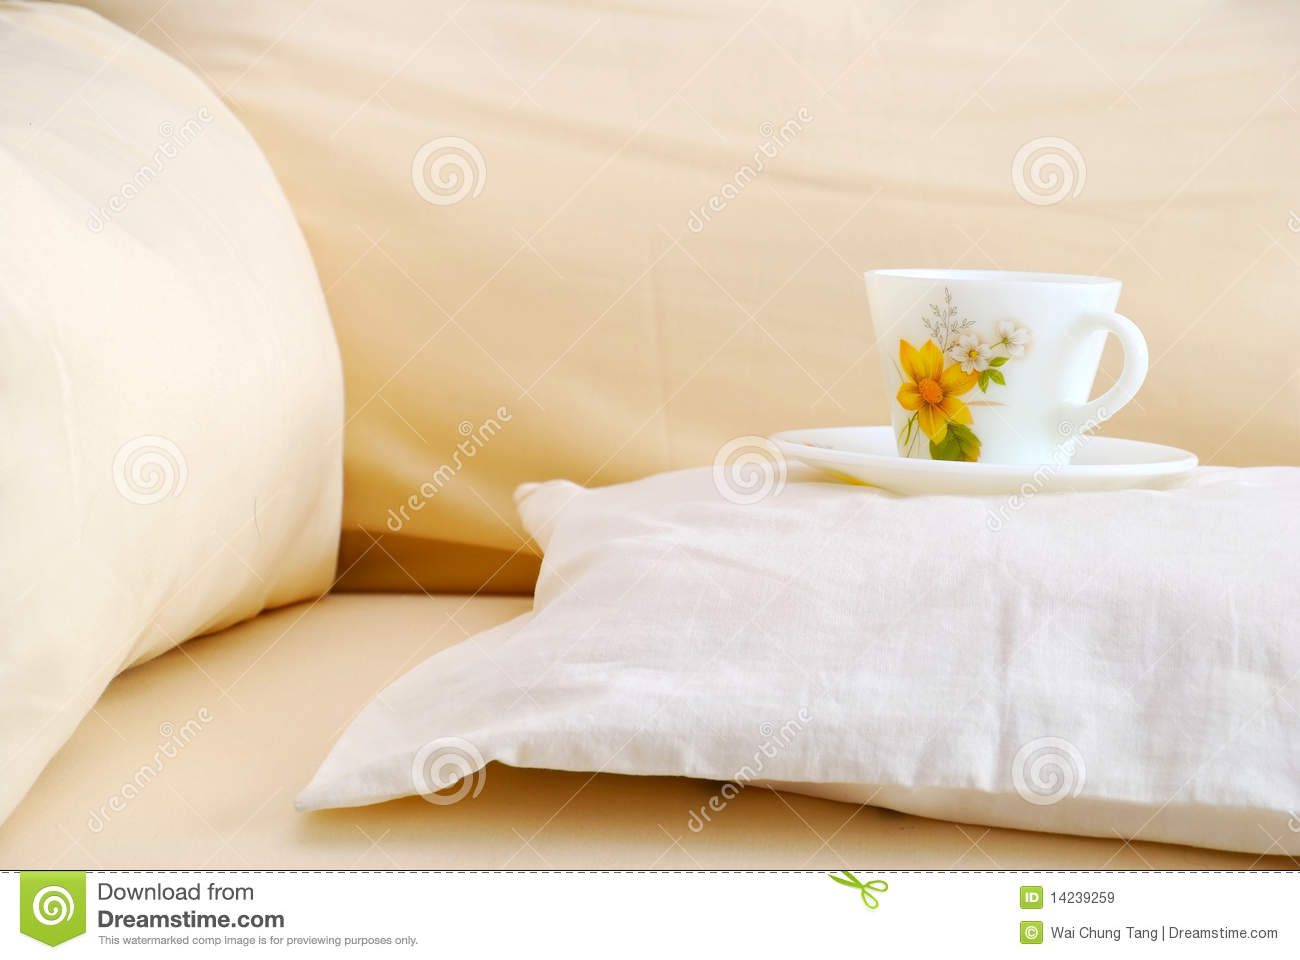 sofa ball stopper willow and hall bed instructions cup on a cushion royalty free stock images image 14239259